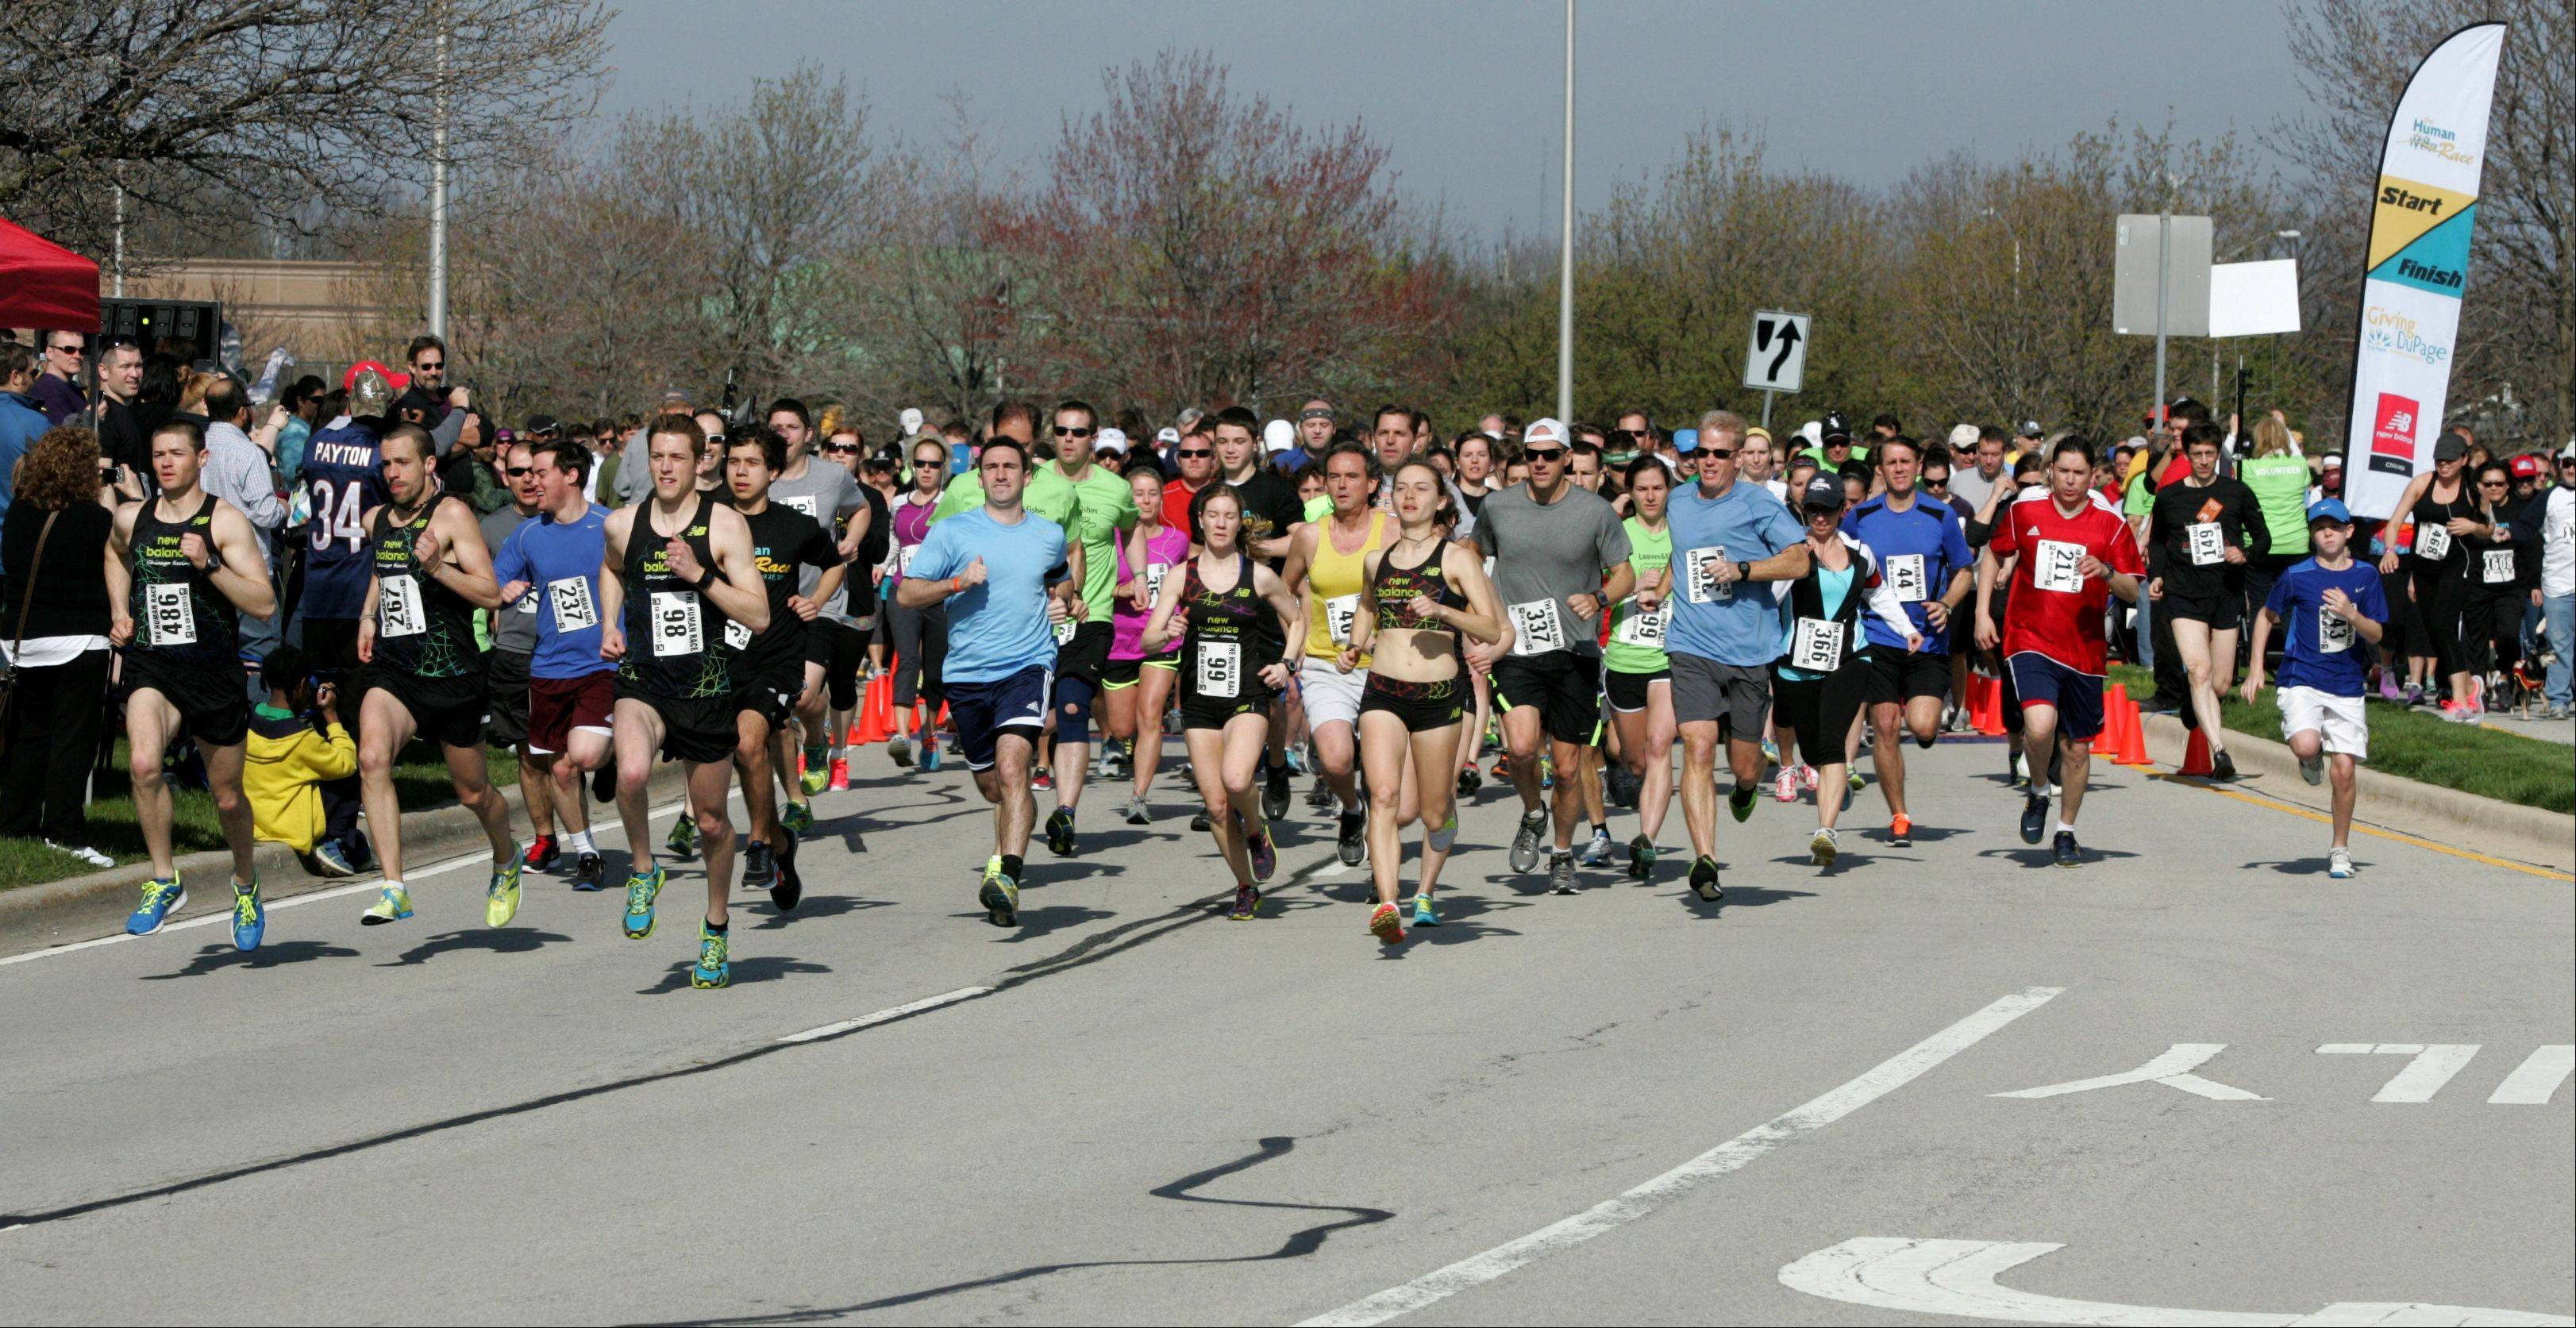 Runners start the second annual Human Race, a 5K run and 2-mile walk hosted by Giving DuPage on Saturday morning in Downers Grove. The race allows supporters of small, local nonprofits to fundraise for the charity of their choice.